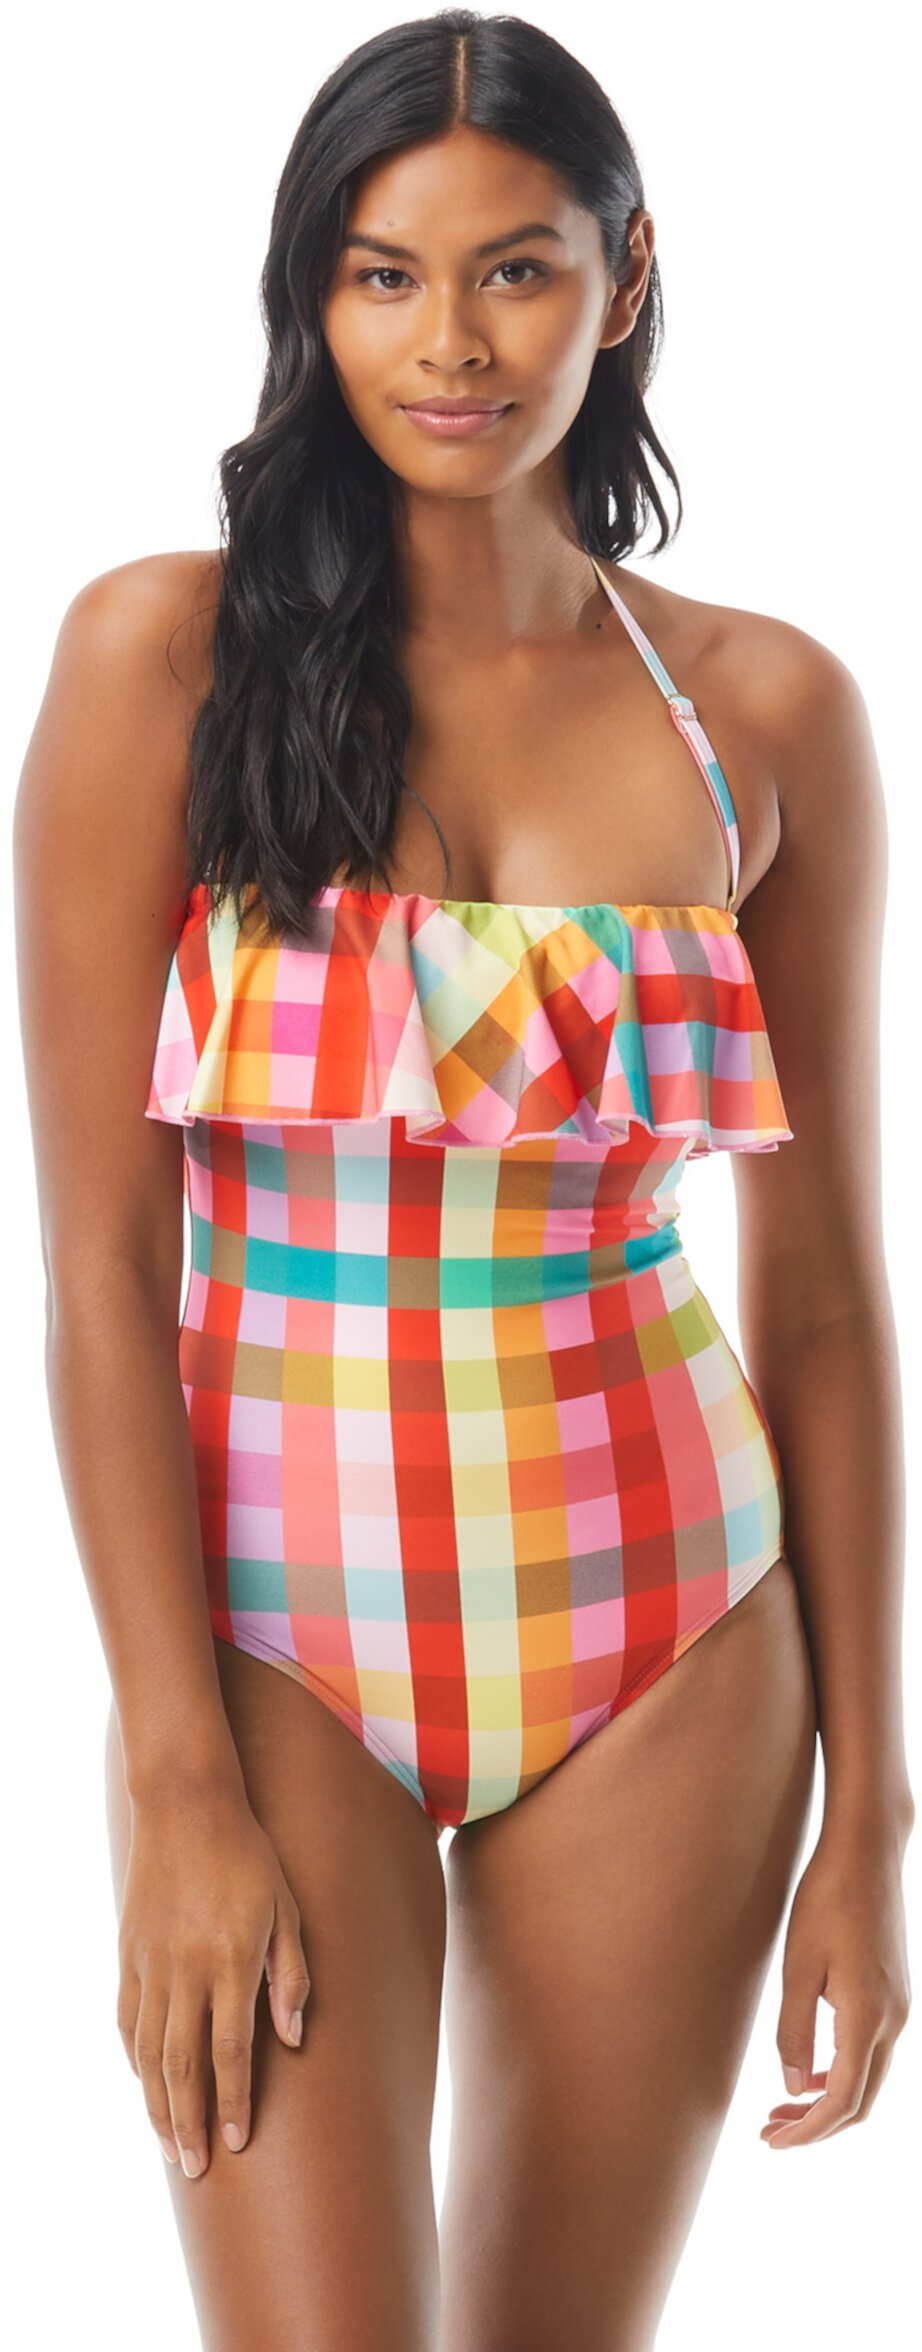 Garden Plaid Ruffle Bandeau One-Piece w/ Underwire and Removable Straps Kate Spade New York